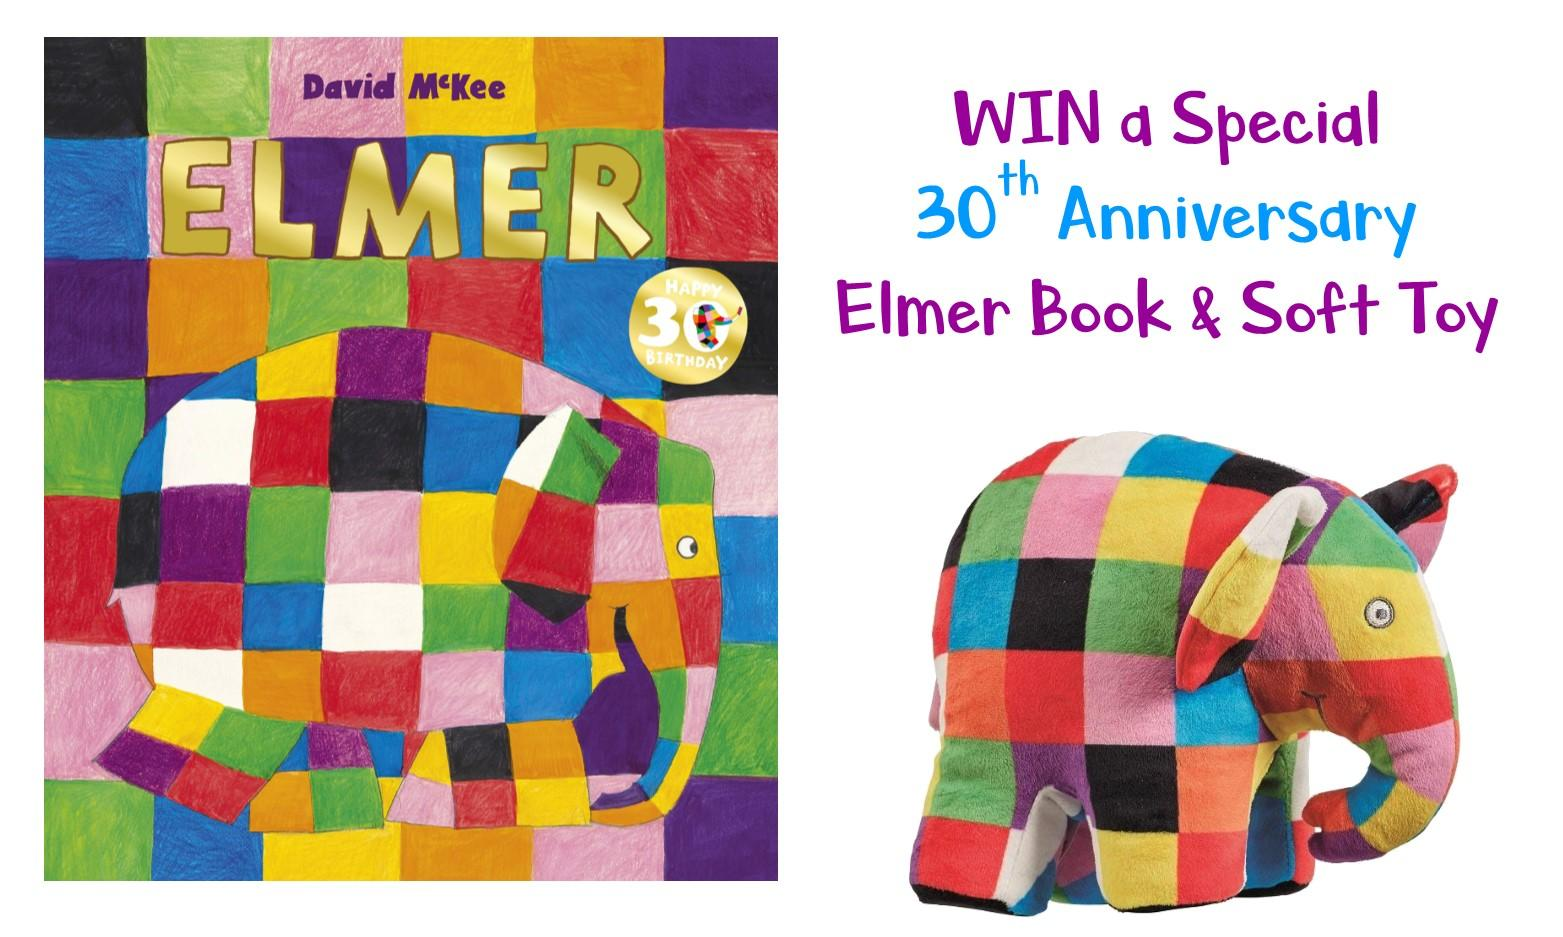 WIN a Special 30th Anniversary Elmer Book and Soft Toy